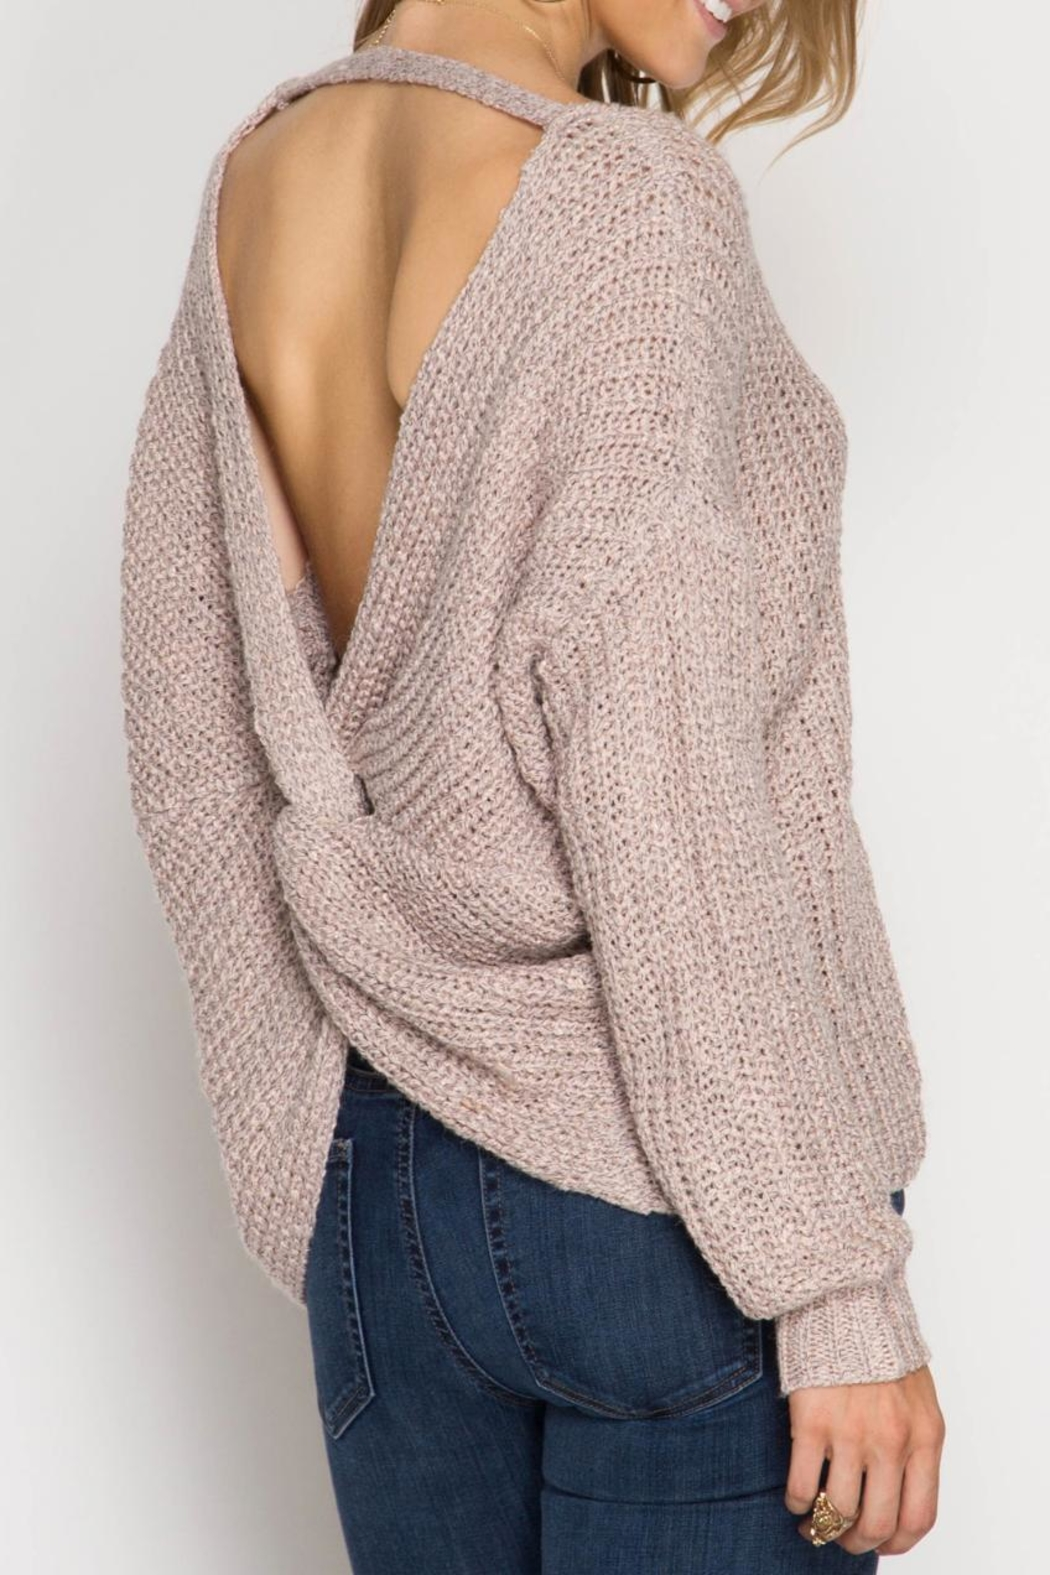 She + Sky Twist Back Sweater from Kansas by Seirer s Clothing ... 111ec9f5b